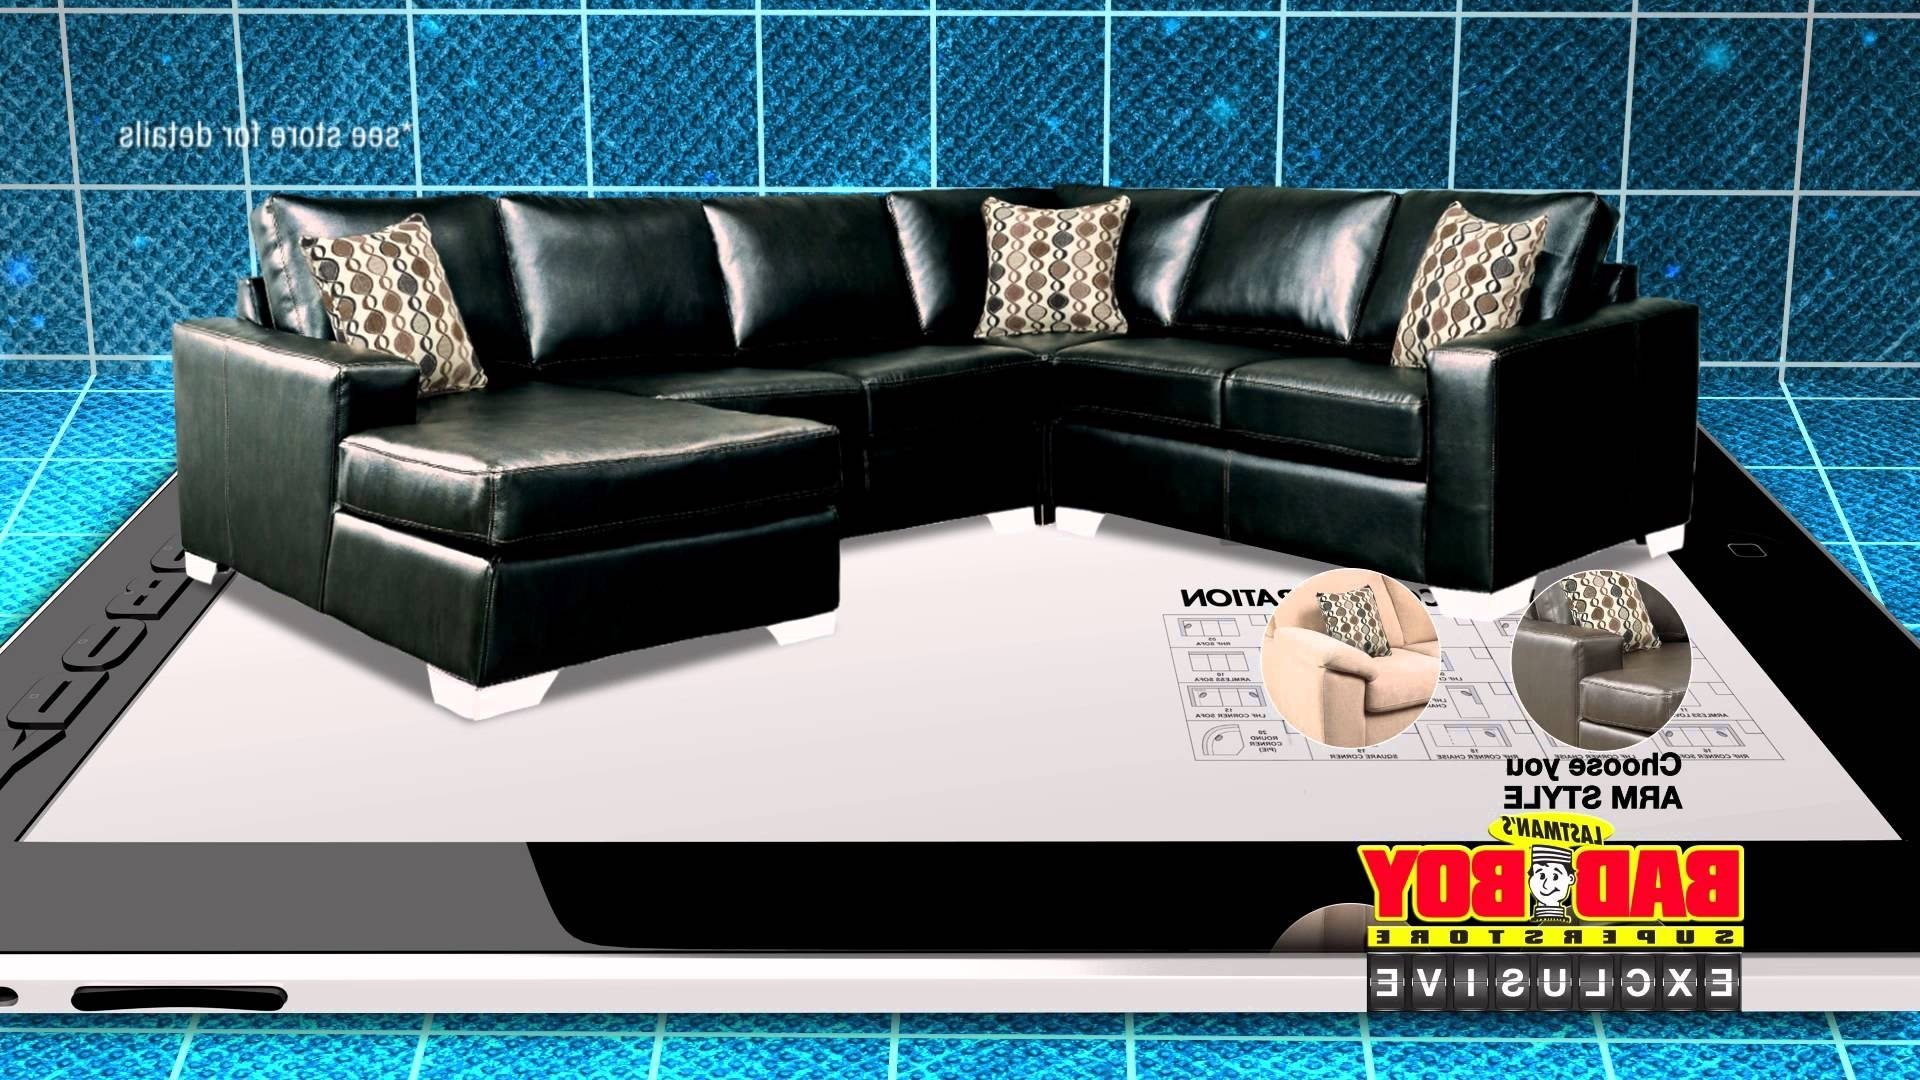 Well Known Sectional Sofas At Bad Boy Intended For Have It Your Way, Customize Your Sofa At Lastman's Bad Boy – Youtube (View 5 of 20)